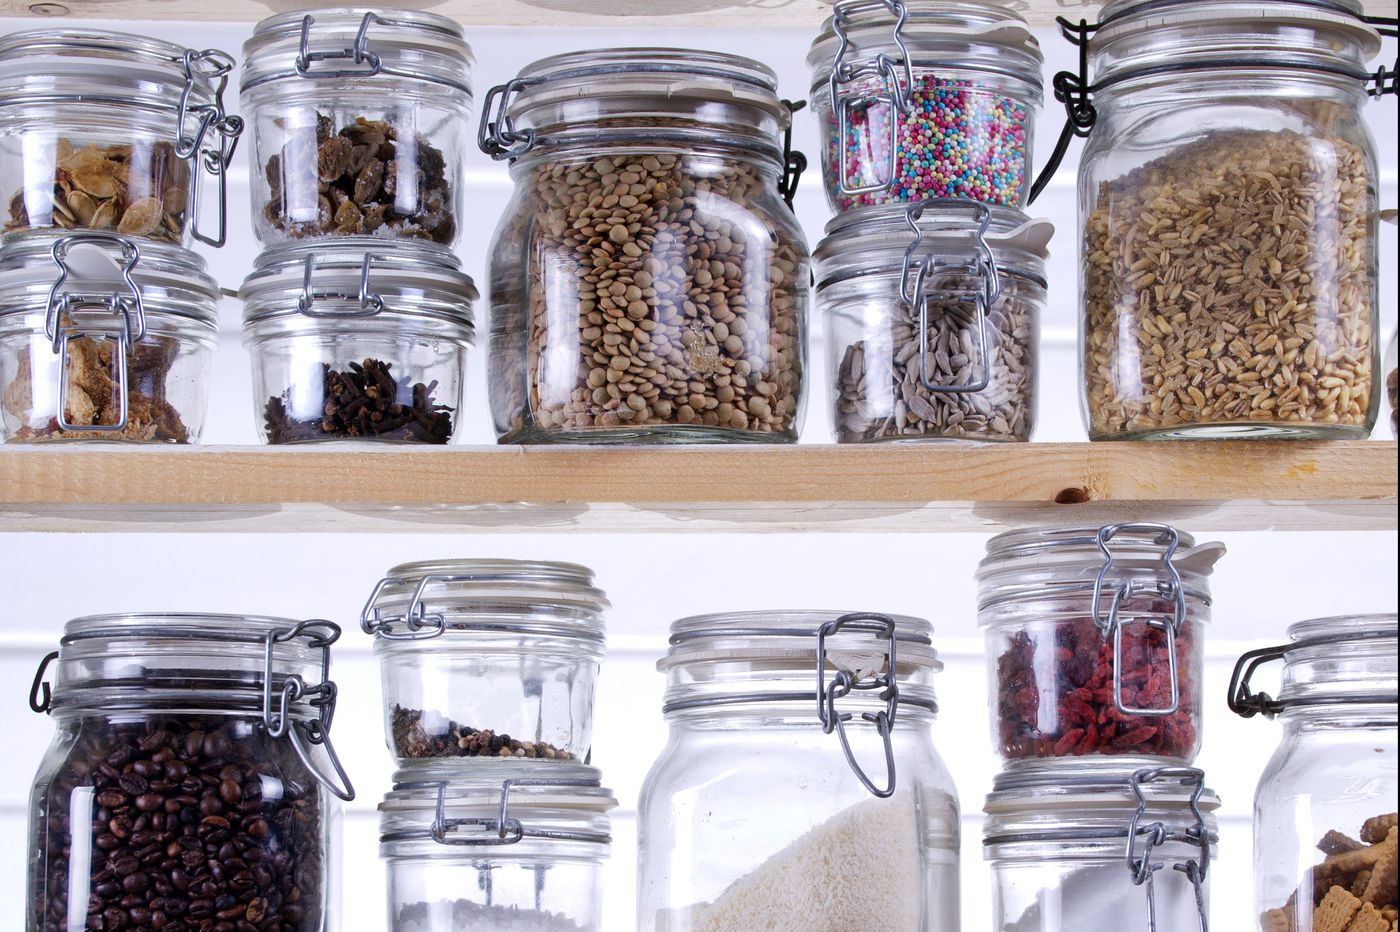 Ask Jennifer Adams: Kitchen storage options to reduce gluten cross-contamination